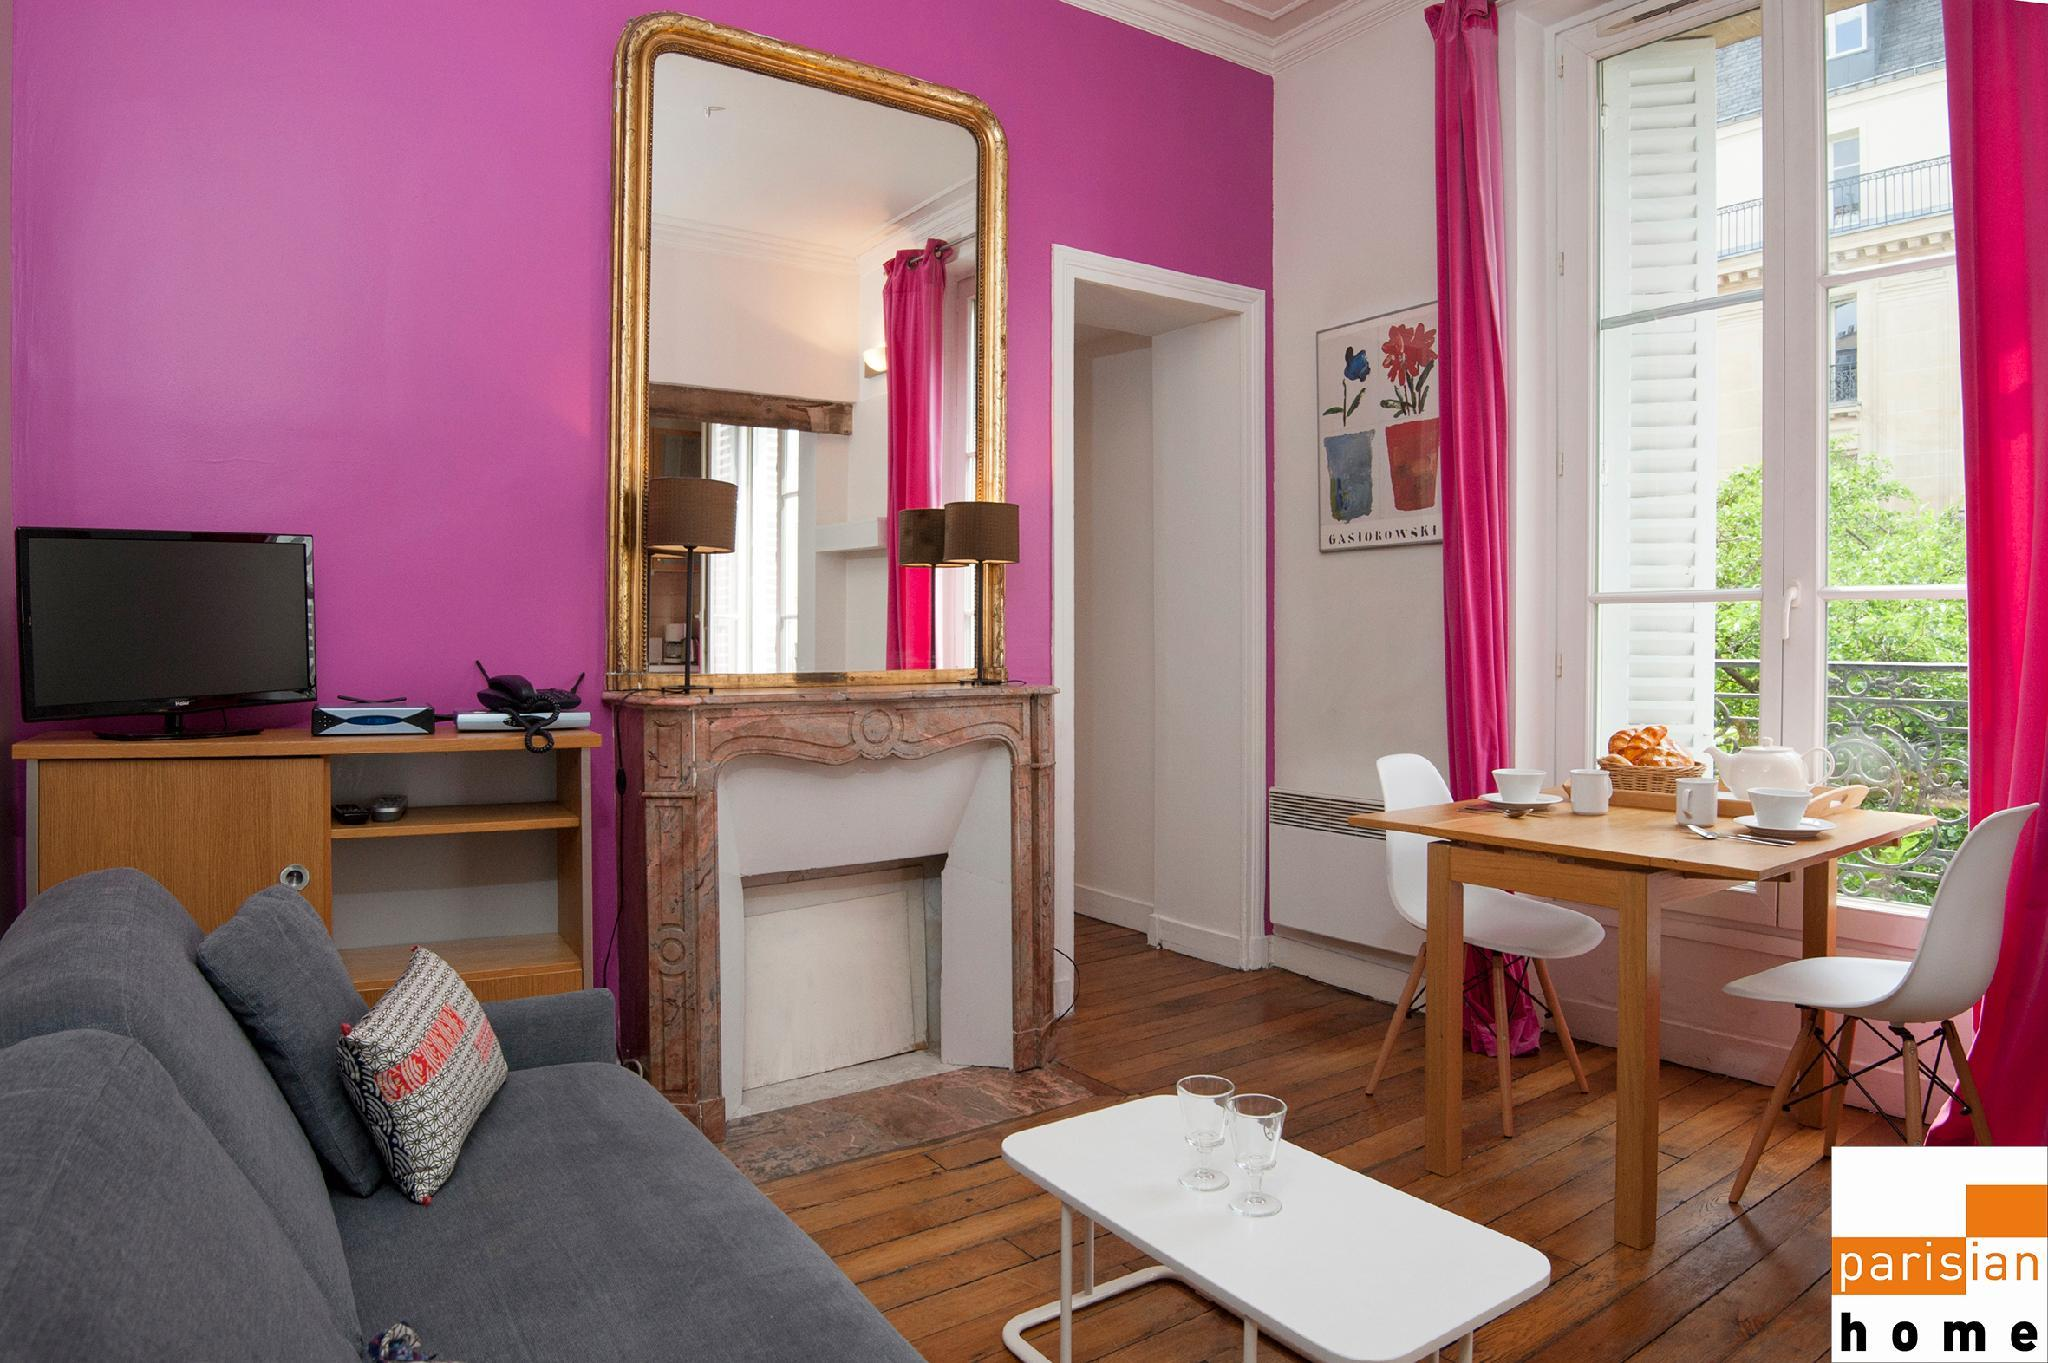 101202 - Comfortable flat for 4 people at a walking distance from Les Halles